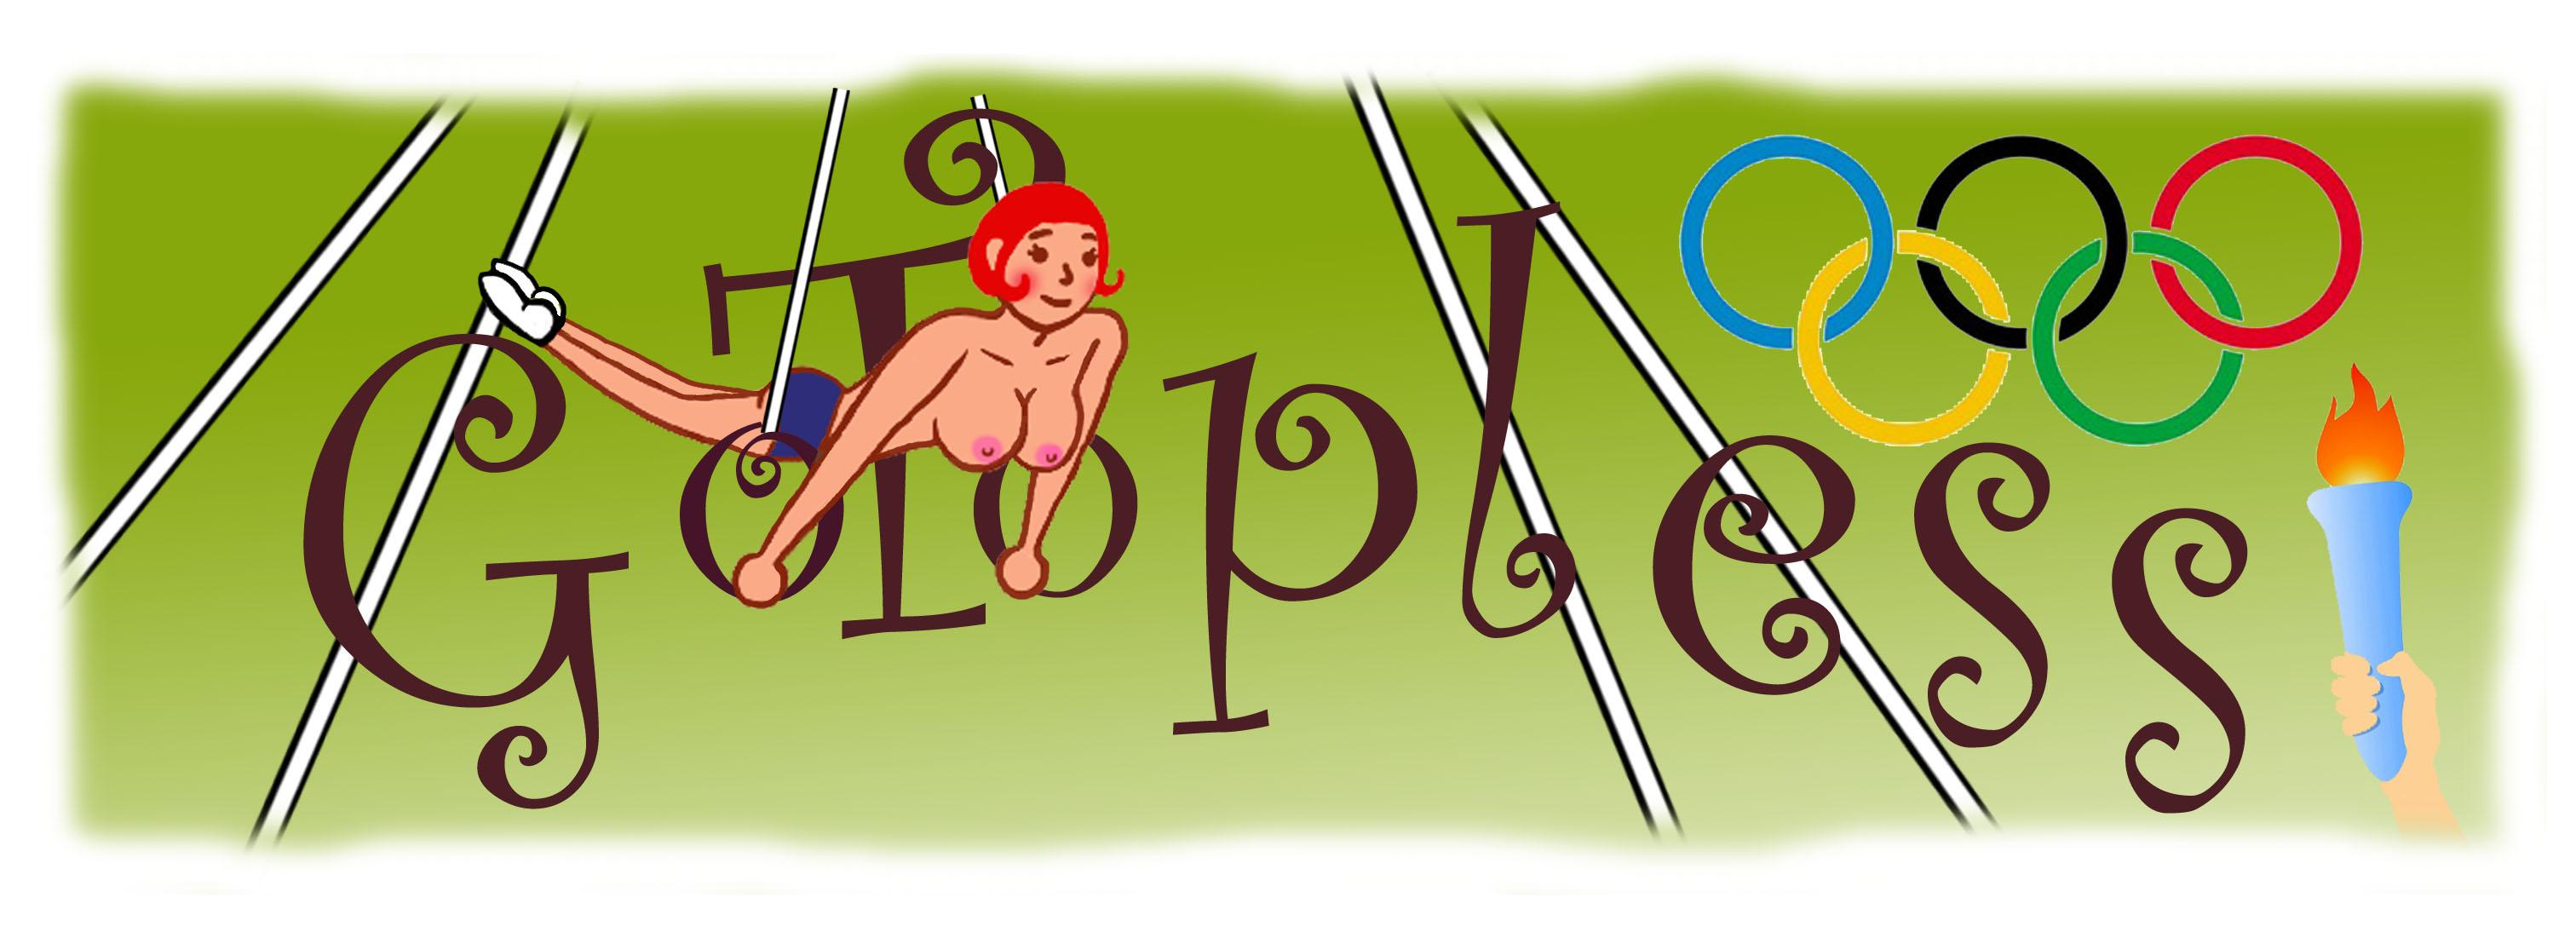 GoTopless Google Not Censored